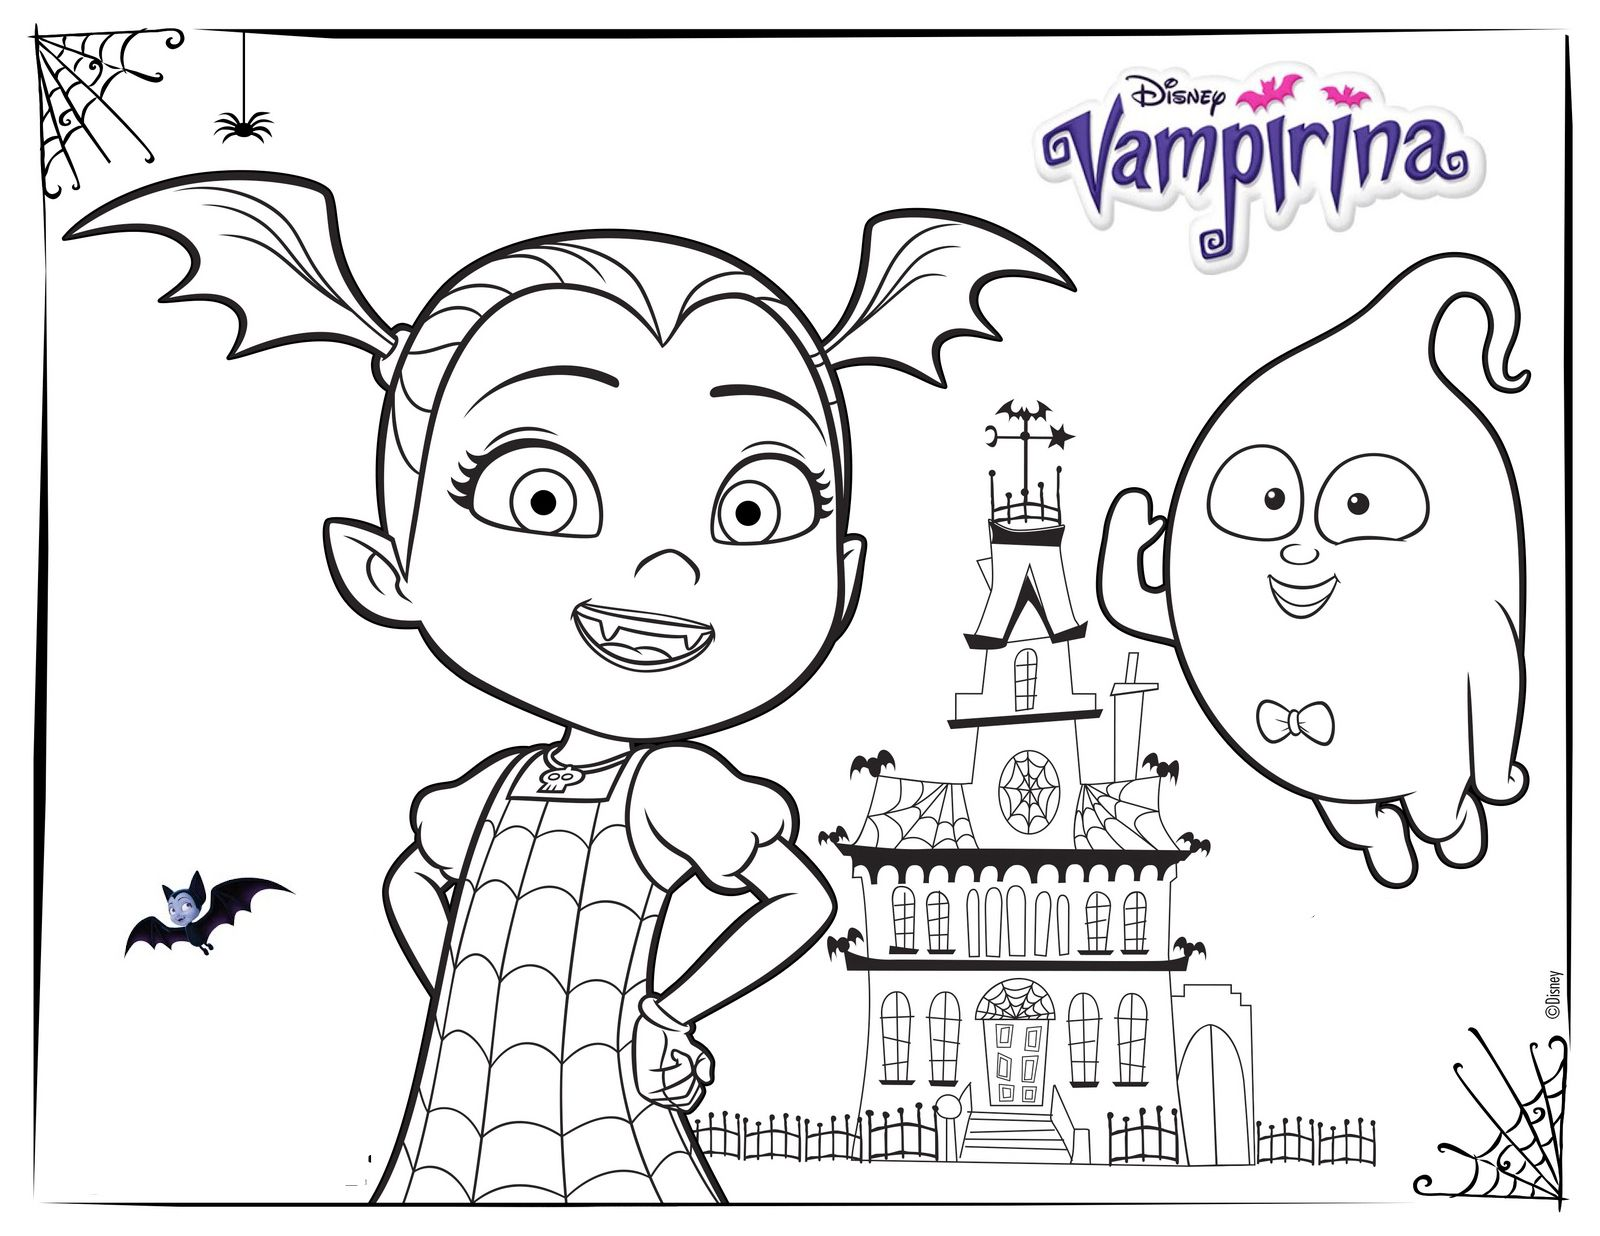 Vampirina And House Coloring Pages Disney Coloring Pages Halloween Coloring Pages Halloween Coloring